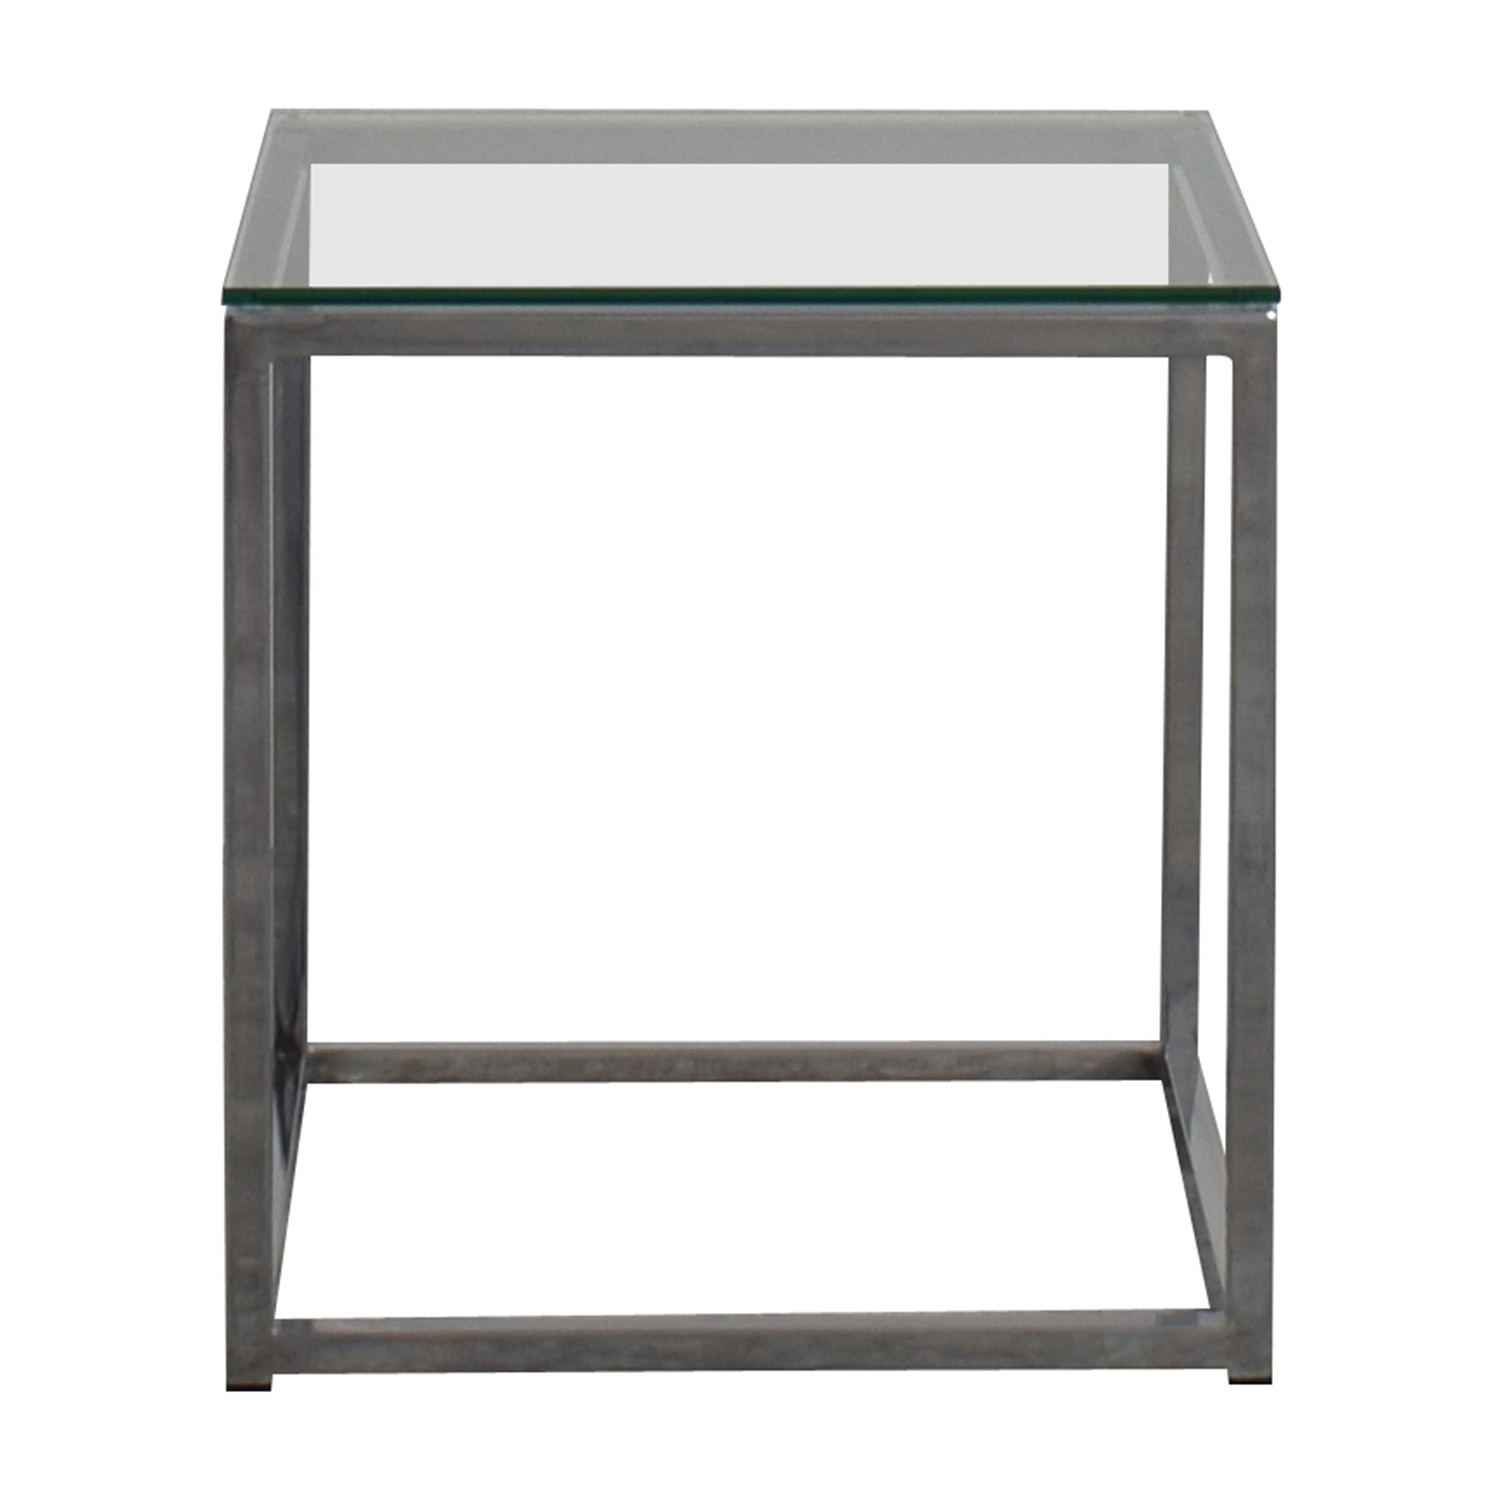 CB2 CB2 Smart Glass Top Side Table used